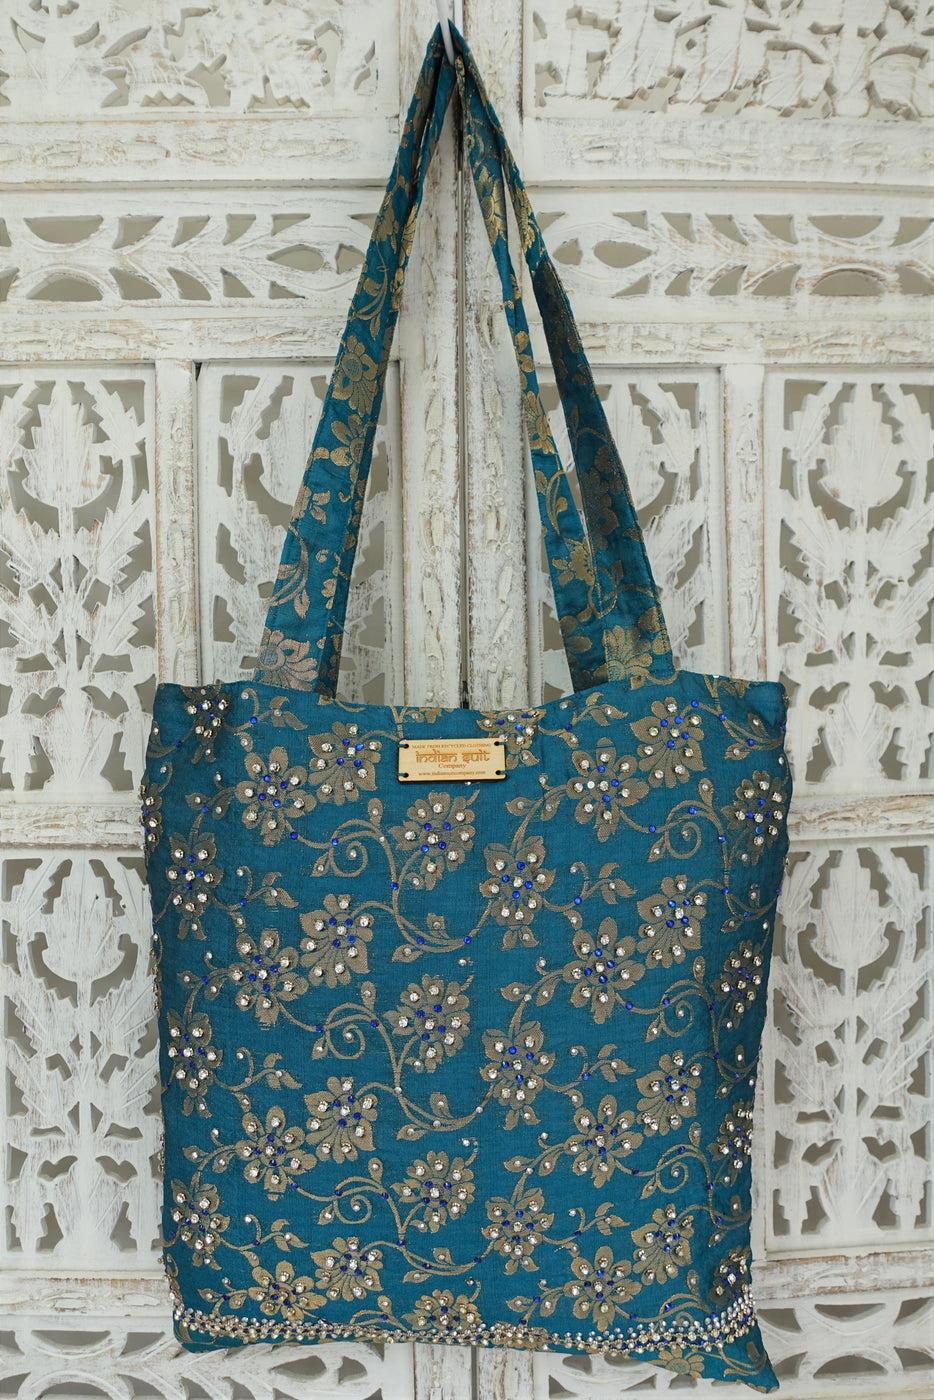 Teal tote bag with diamante stones - New - Indian Suit Company